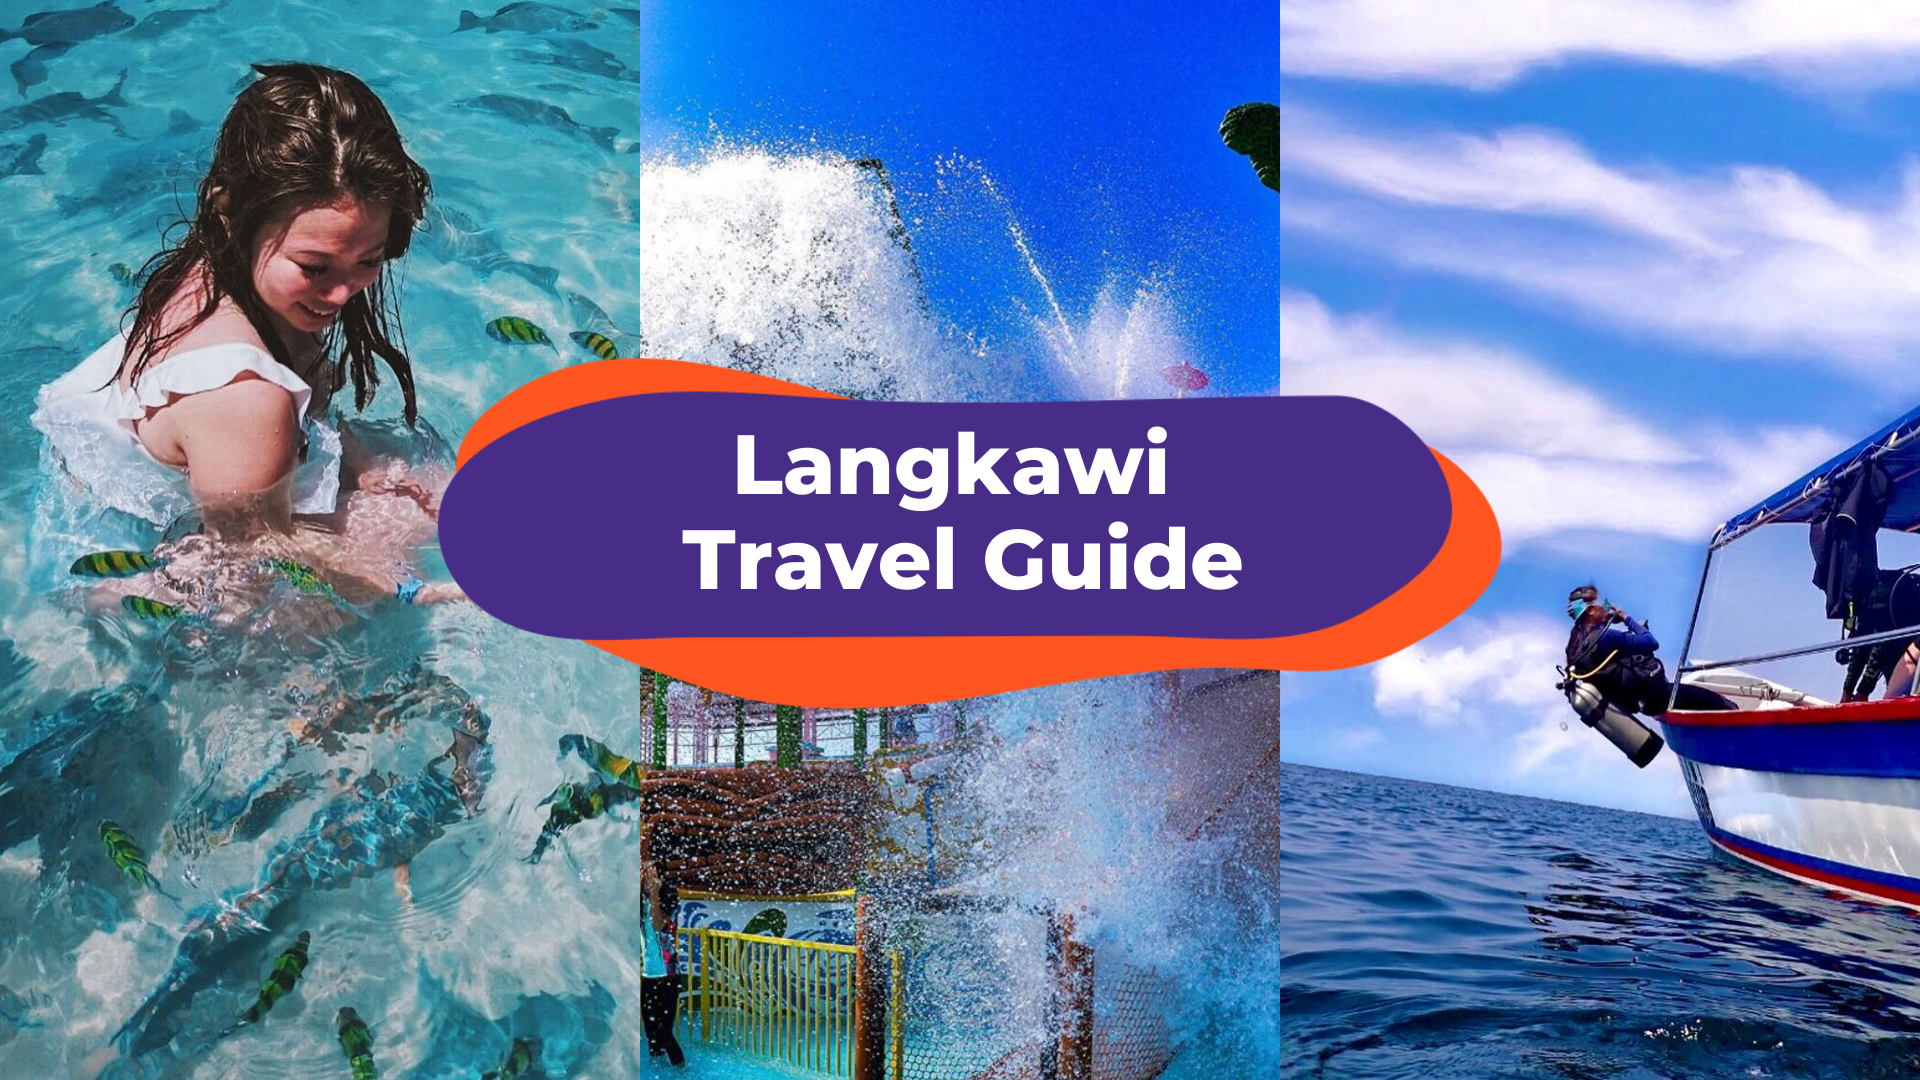 The Ultimate Guide To Langkawi: Plan Your Next Trip To Malaysia's Tropical Paradise